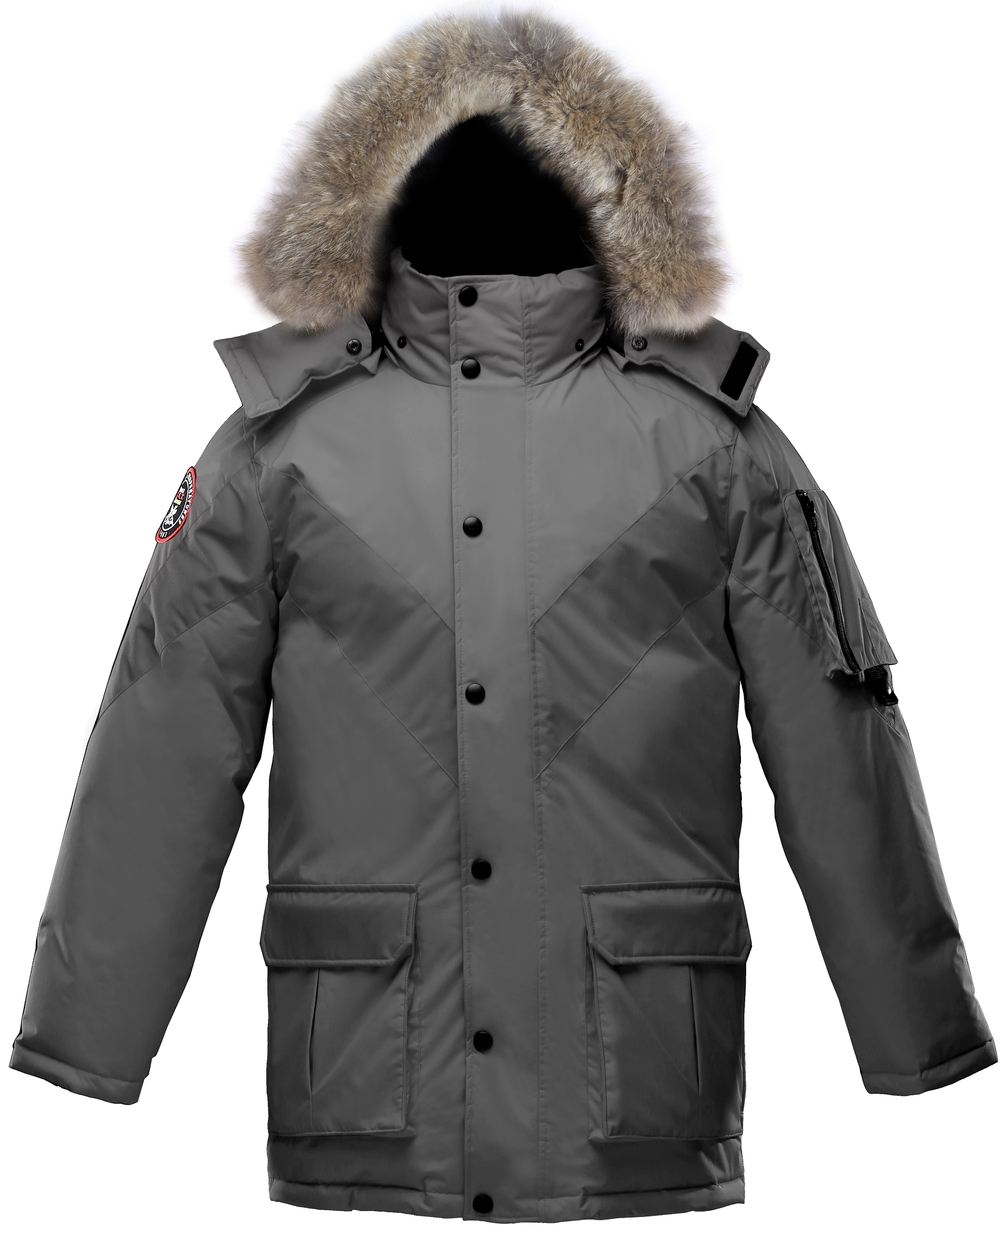 Triple Fat Goose The Hesselberg Parka, $450